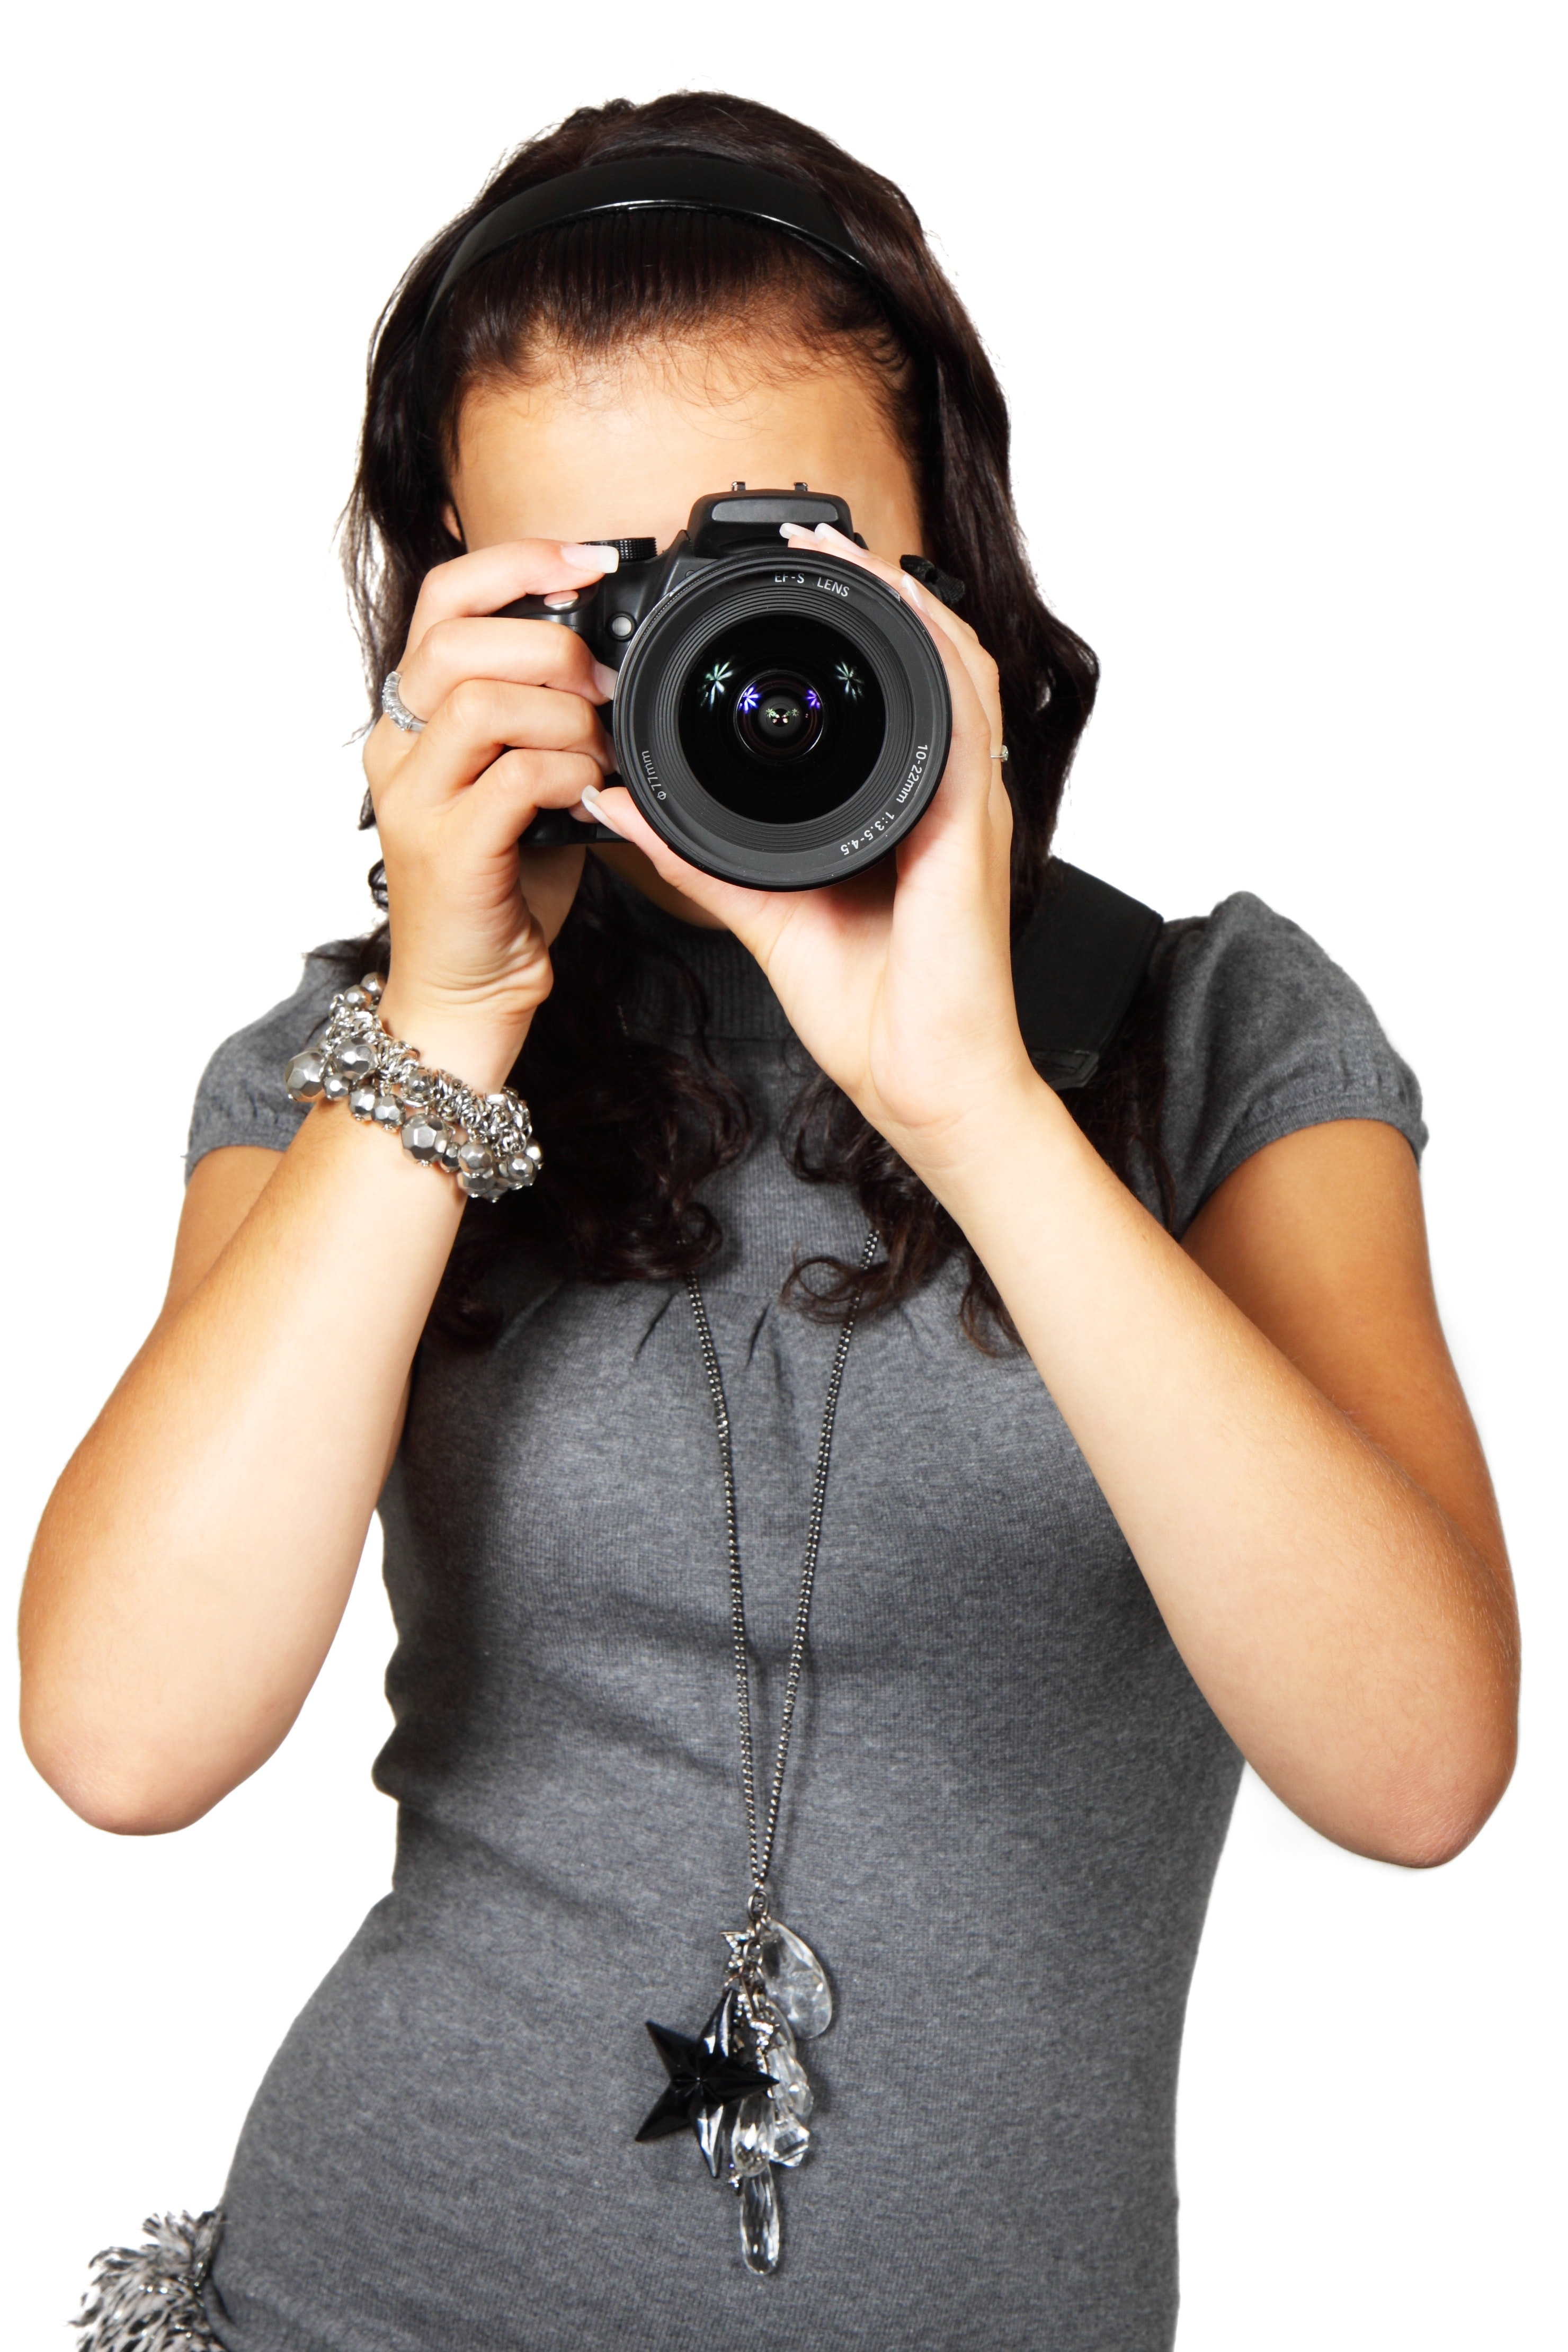 Woman in Grey T-Shirt Using Black DSLR Camera, Photographer, Young, Woman, Technology, HQ Photo